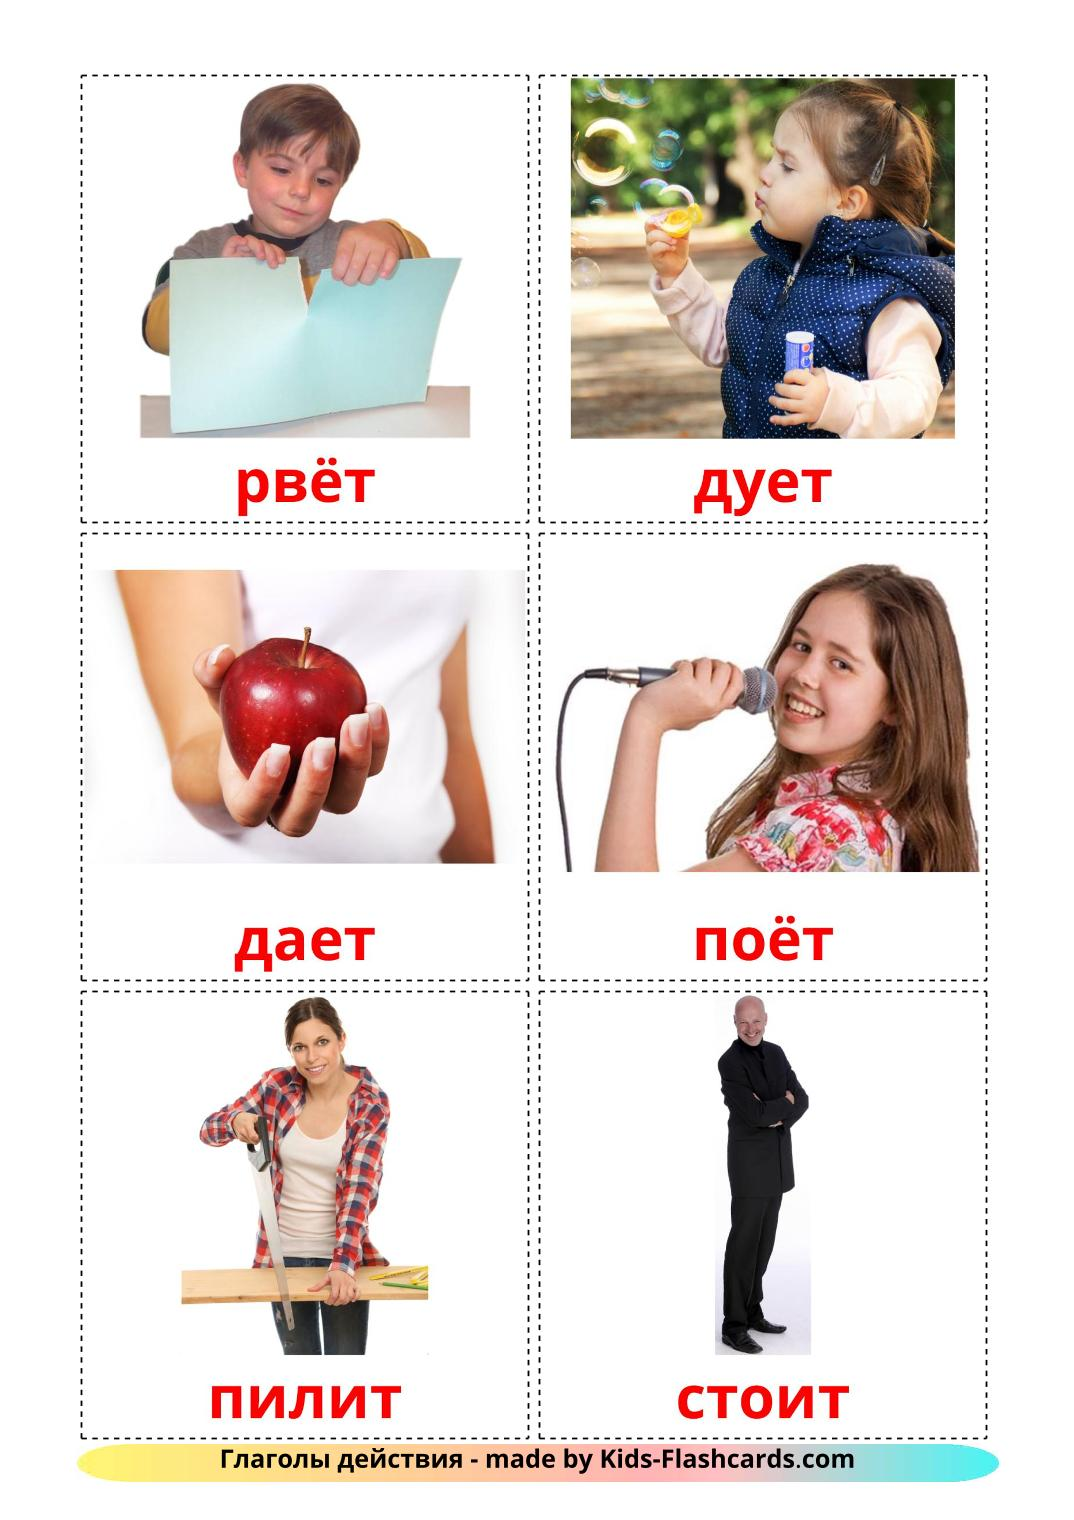 Action verbs - 55 Free Printable russian Flashcards